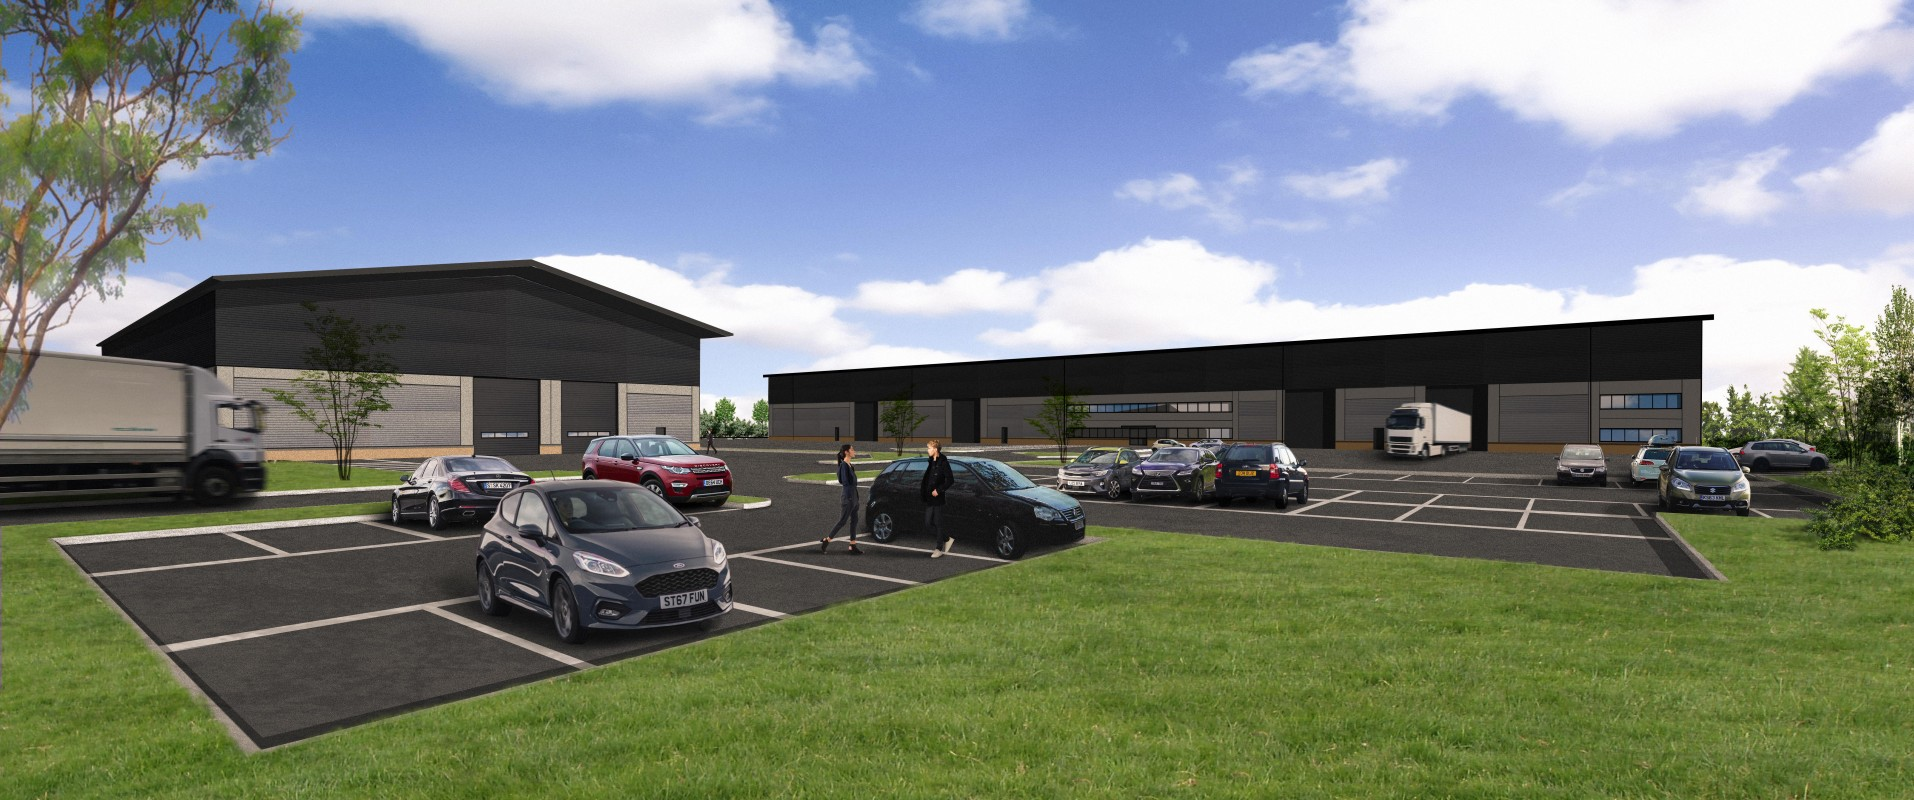 Image 1 of Prime Point - Phase 2